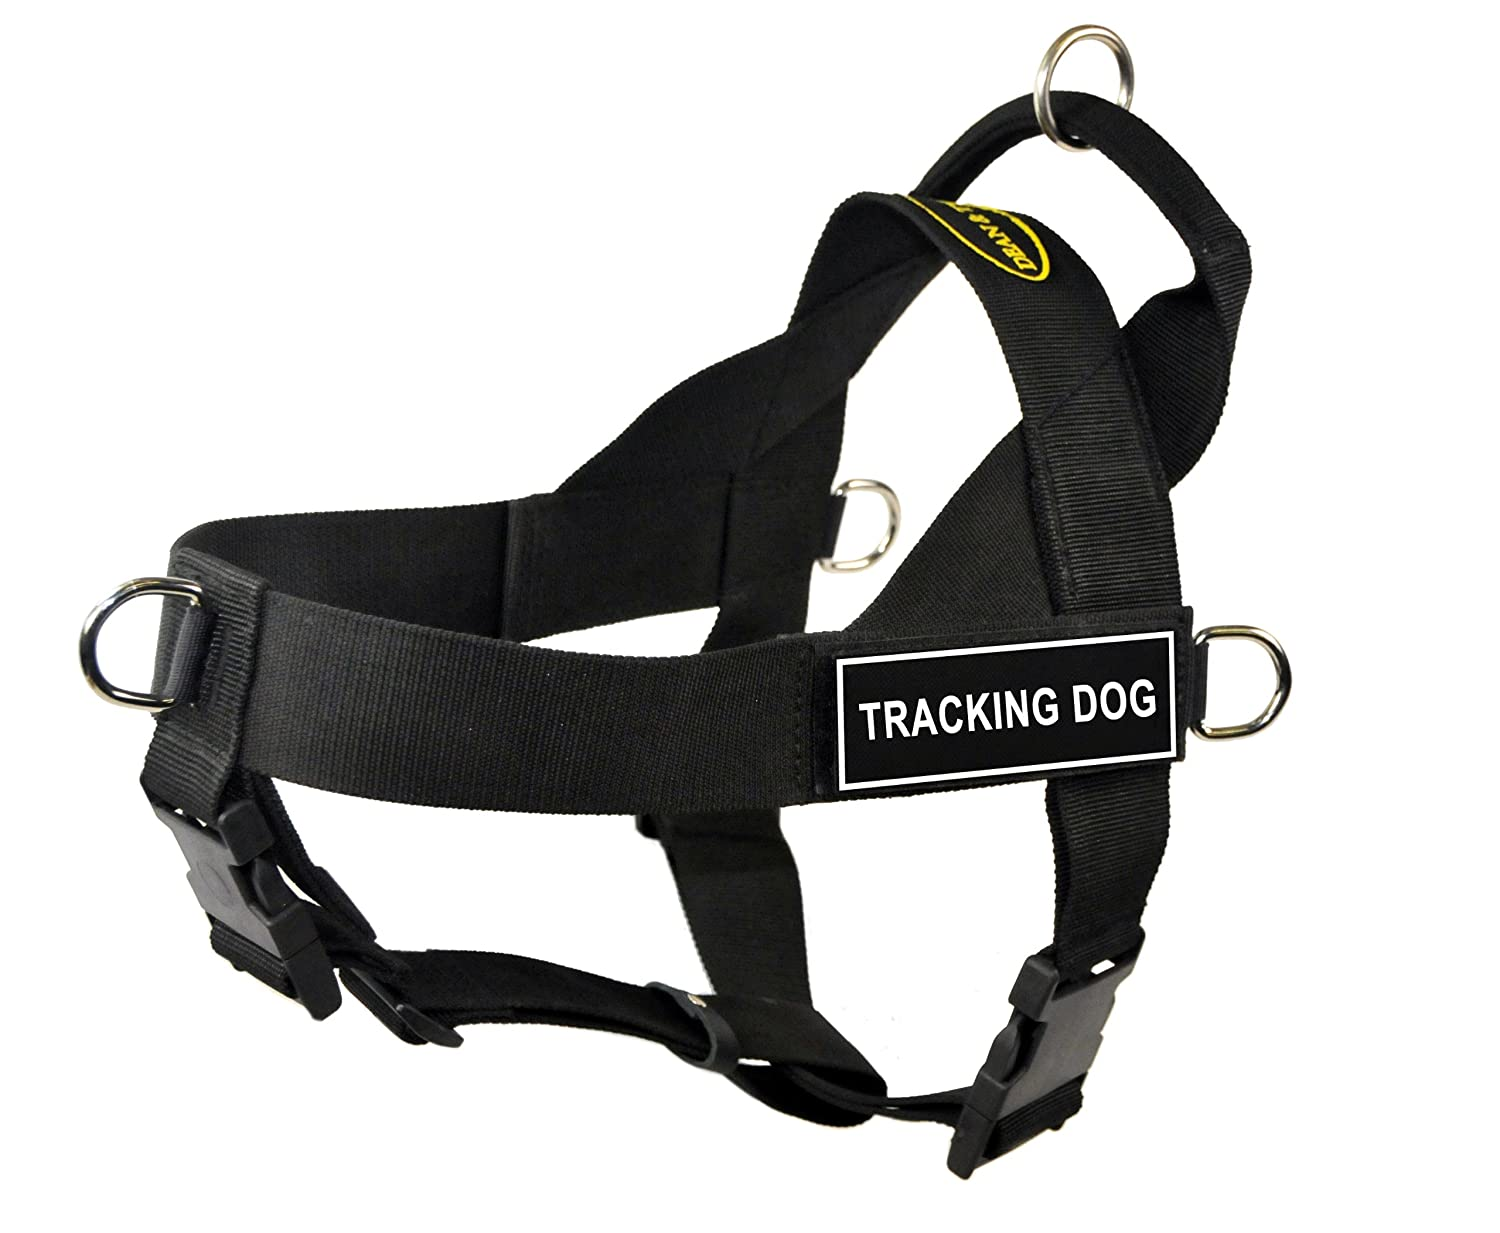 Dean & Tyler Universal No Pull 24-Inch to 27-Inch Dog Harness, Small, Tracking Dog, Black